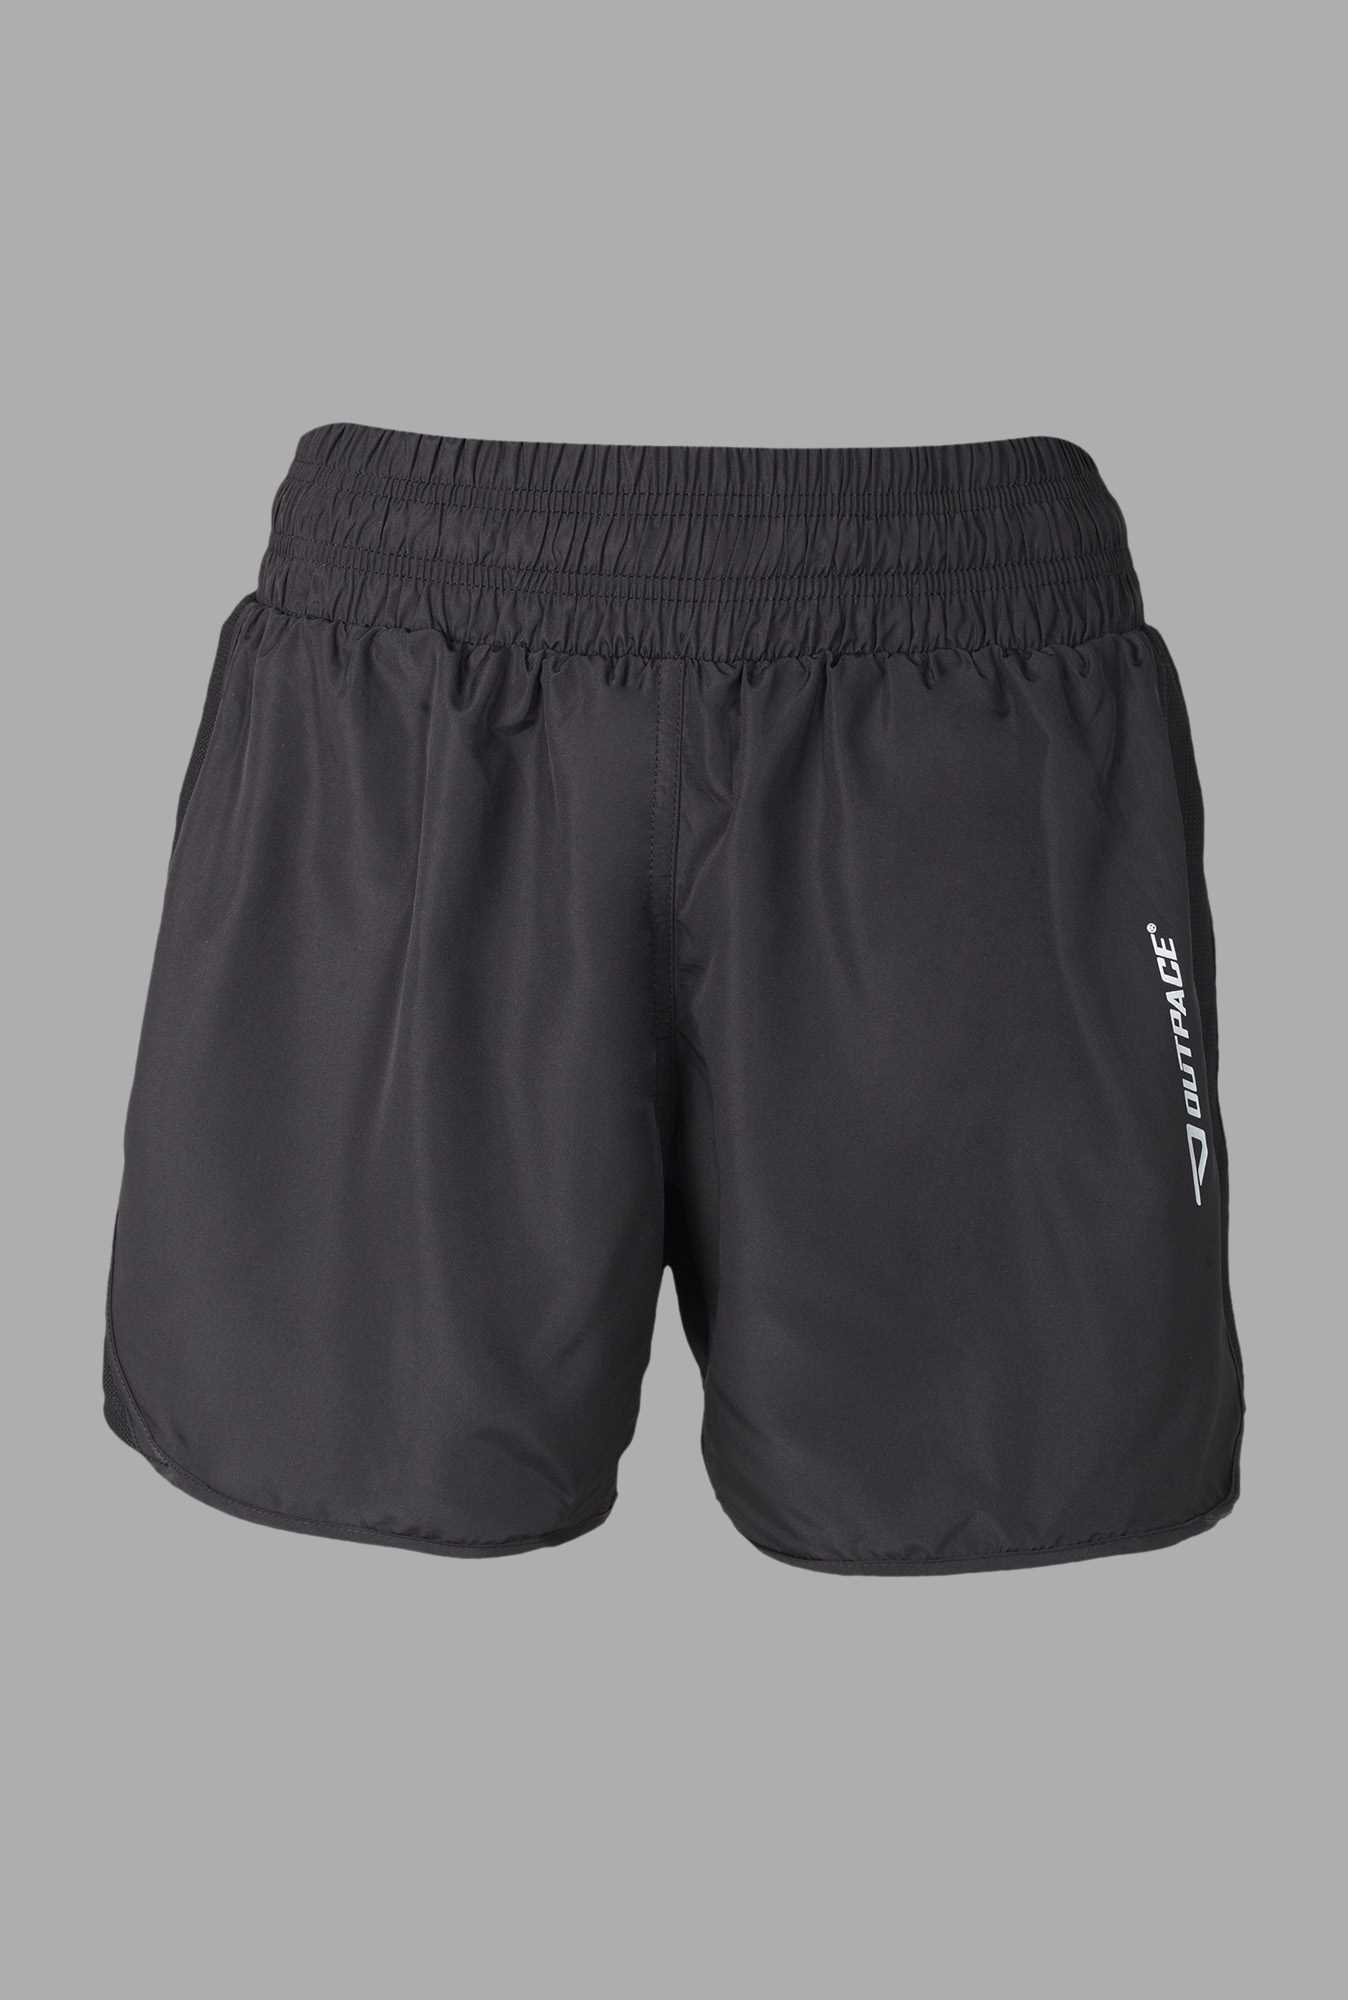 Outpace Black Solid Running Shorts